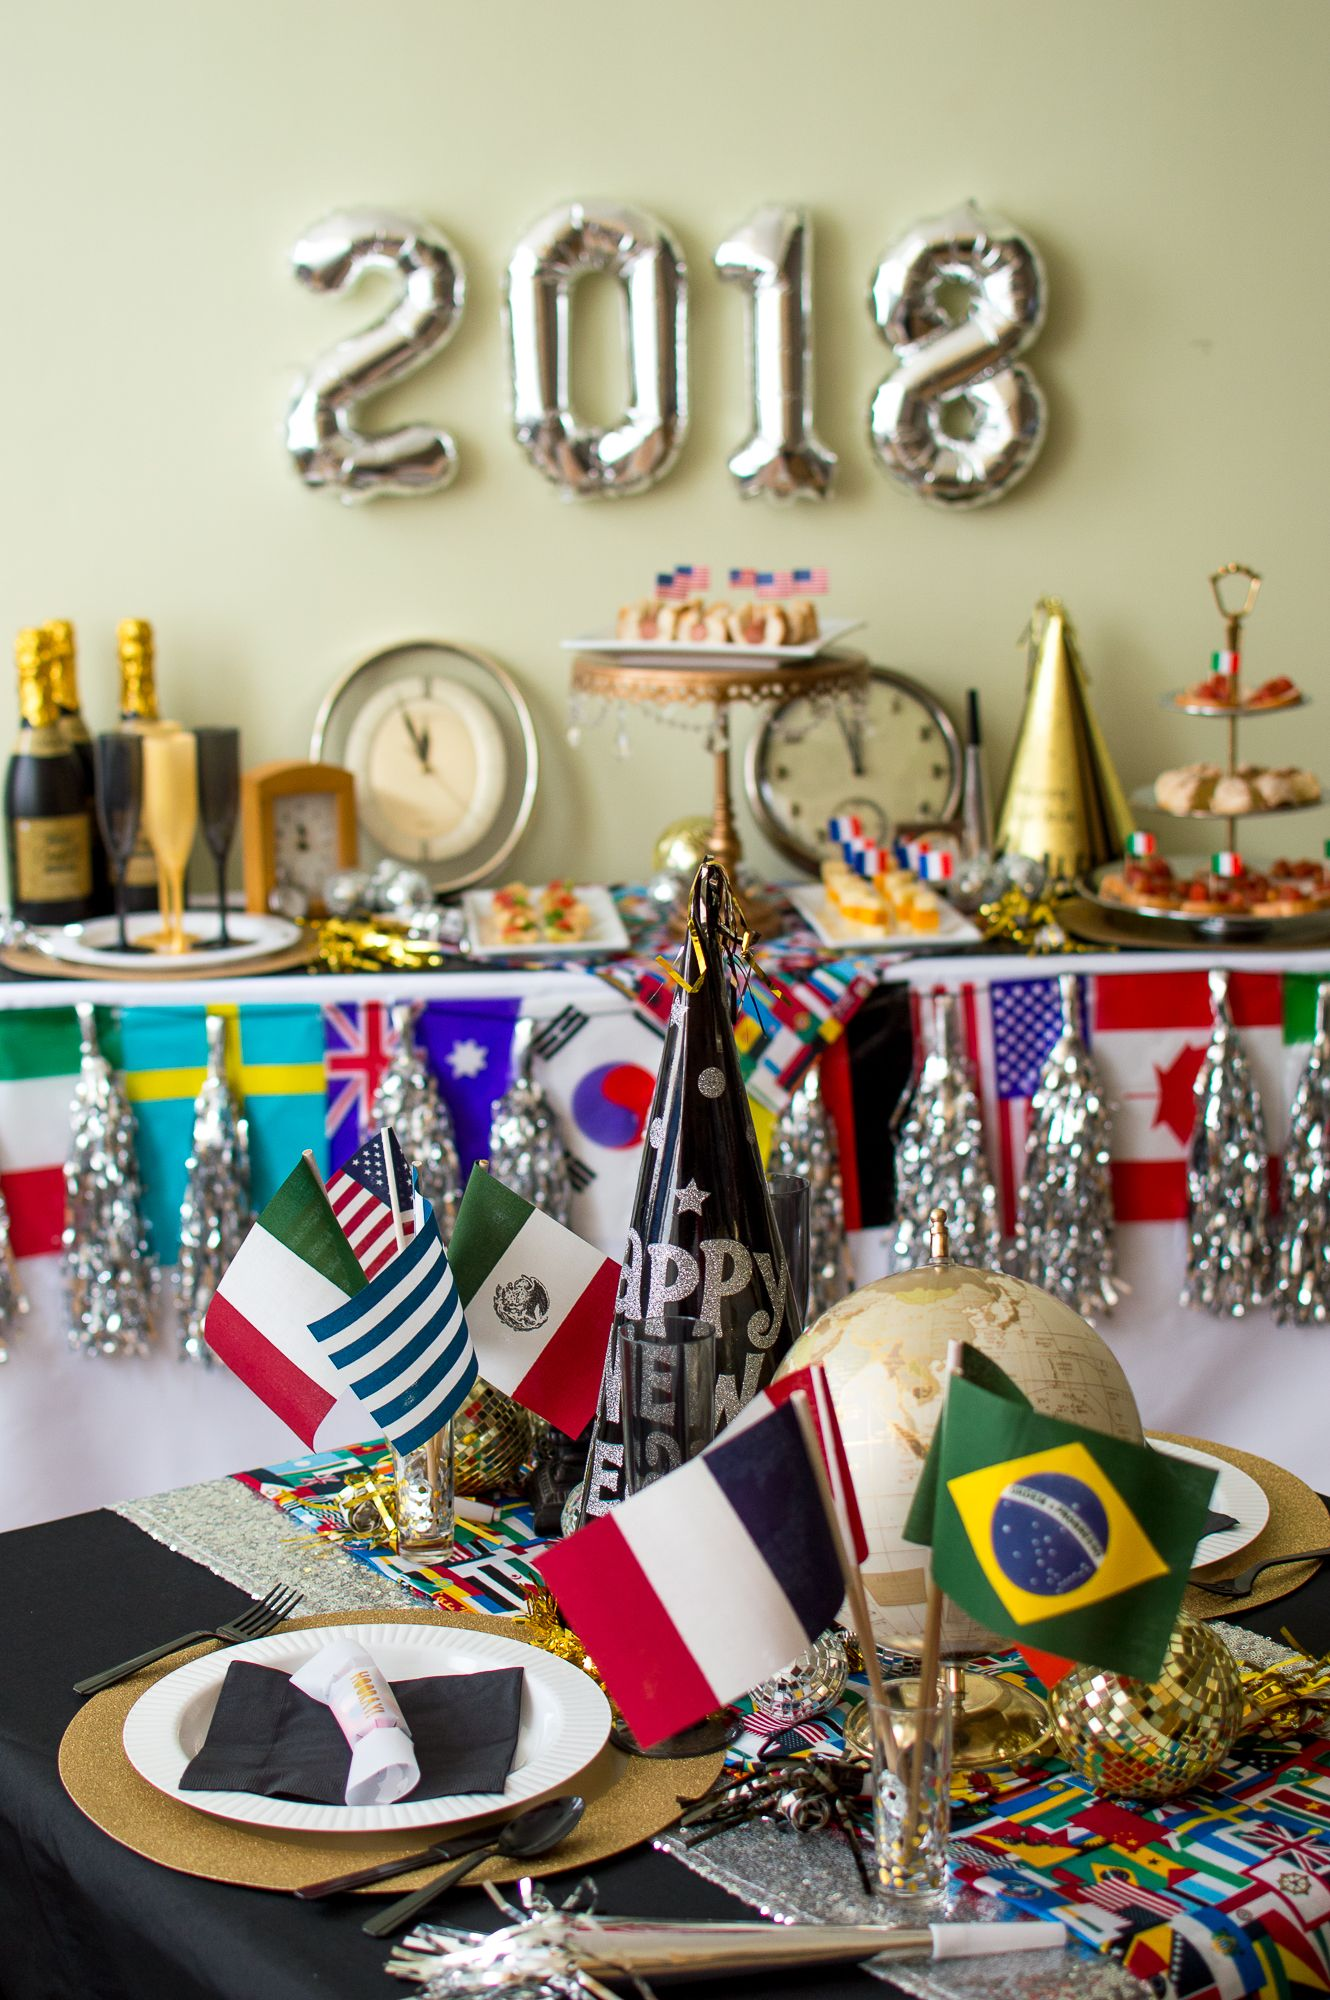 Around The World Nye Party Nye Party Decorations New Year S Eve Around The World Nye Party